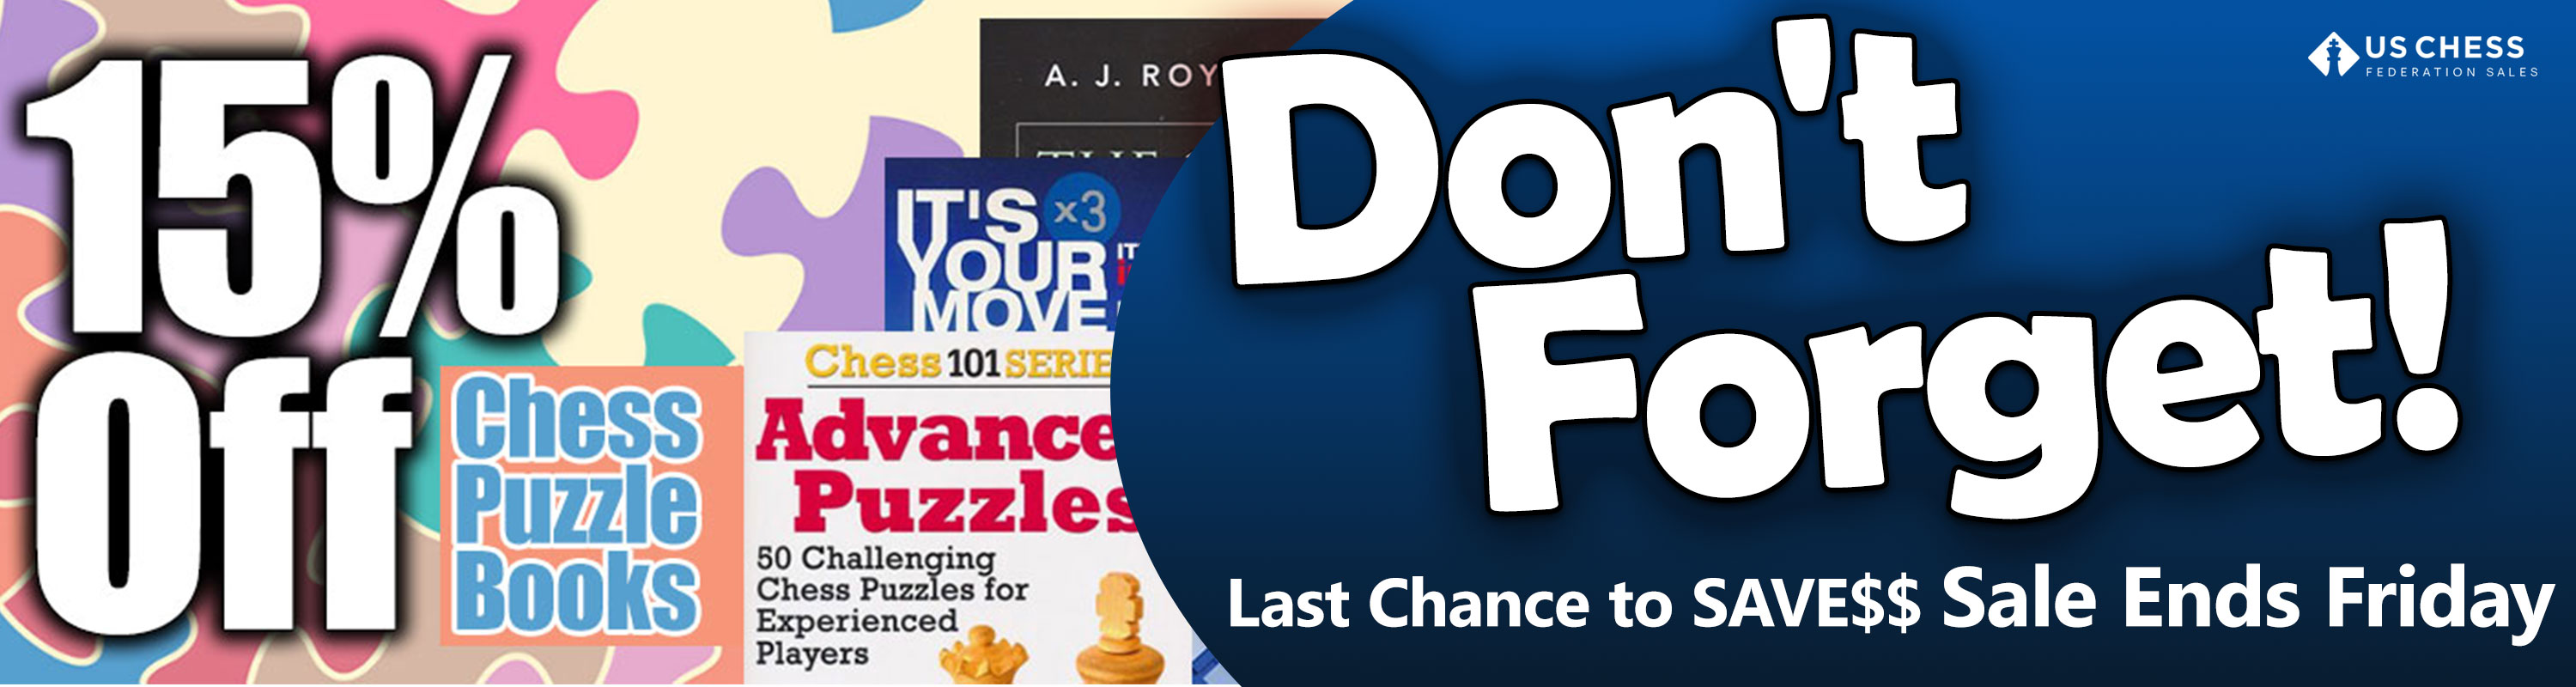 Save 15% on Chess Puzzle Books - Sale Ends Friday